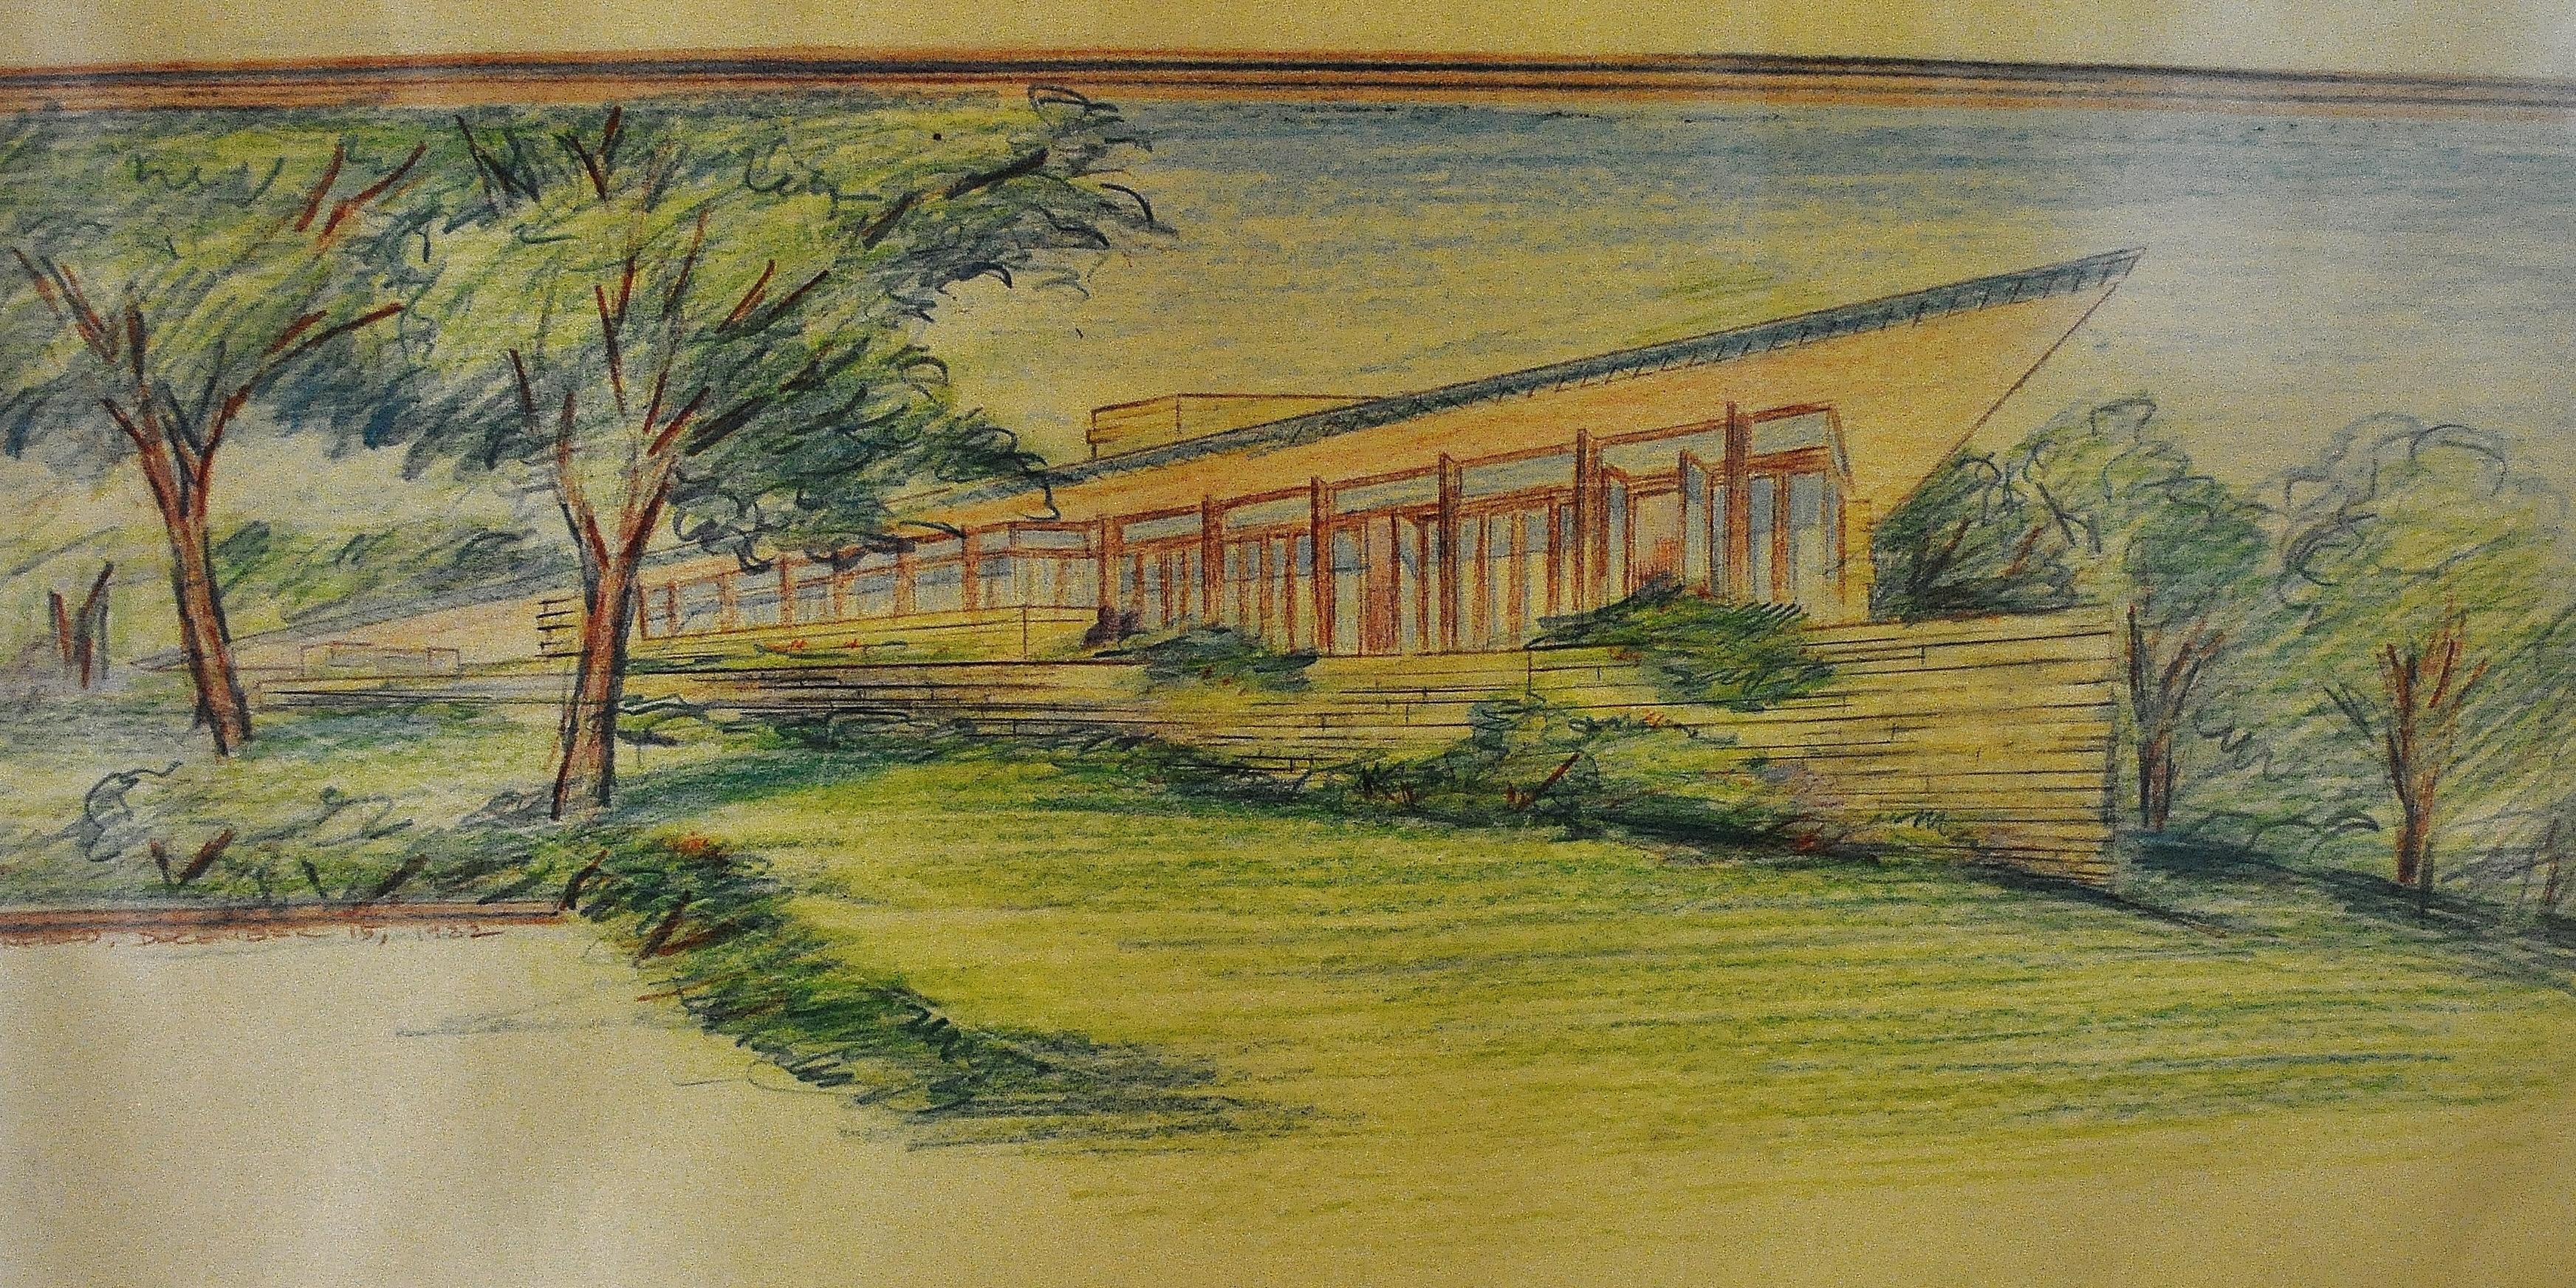 A drawing of the Riverrock House meant to be built on a bluff overlooking the Chagrin River